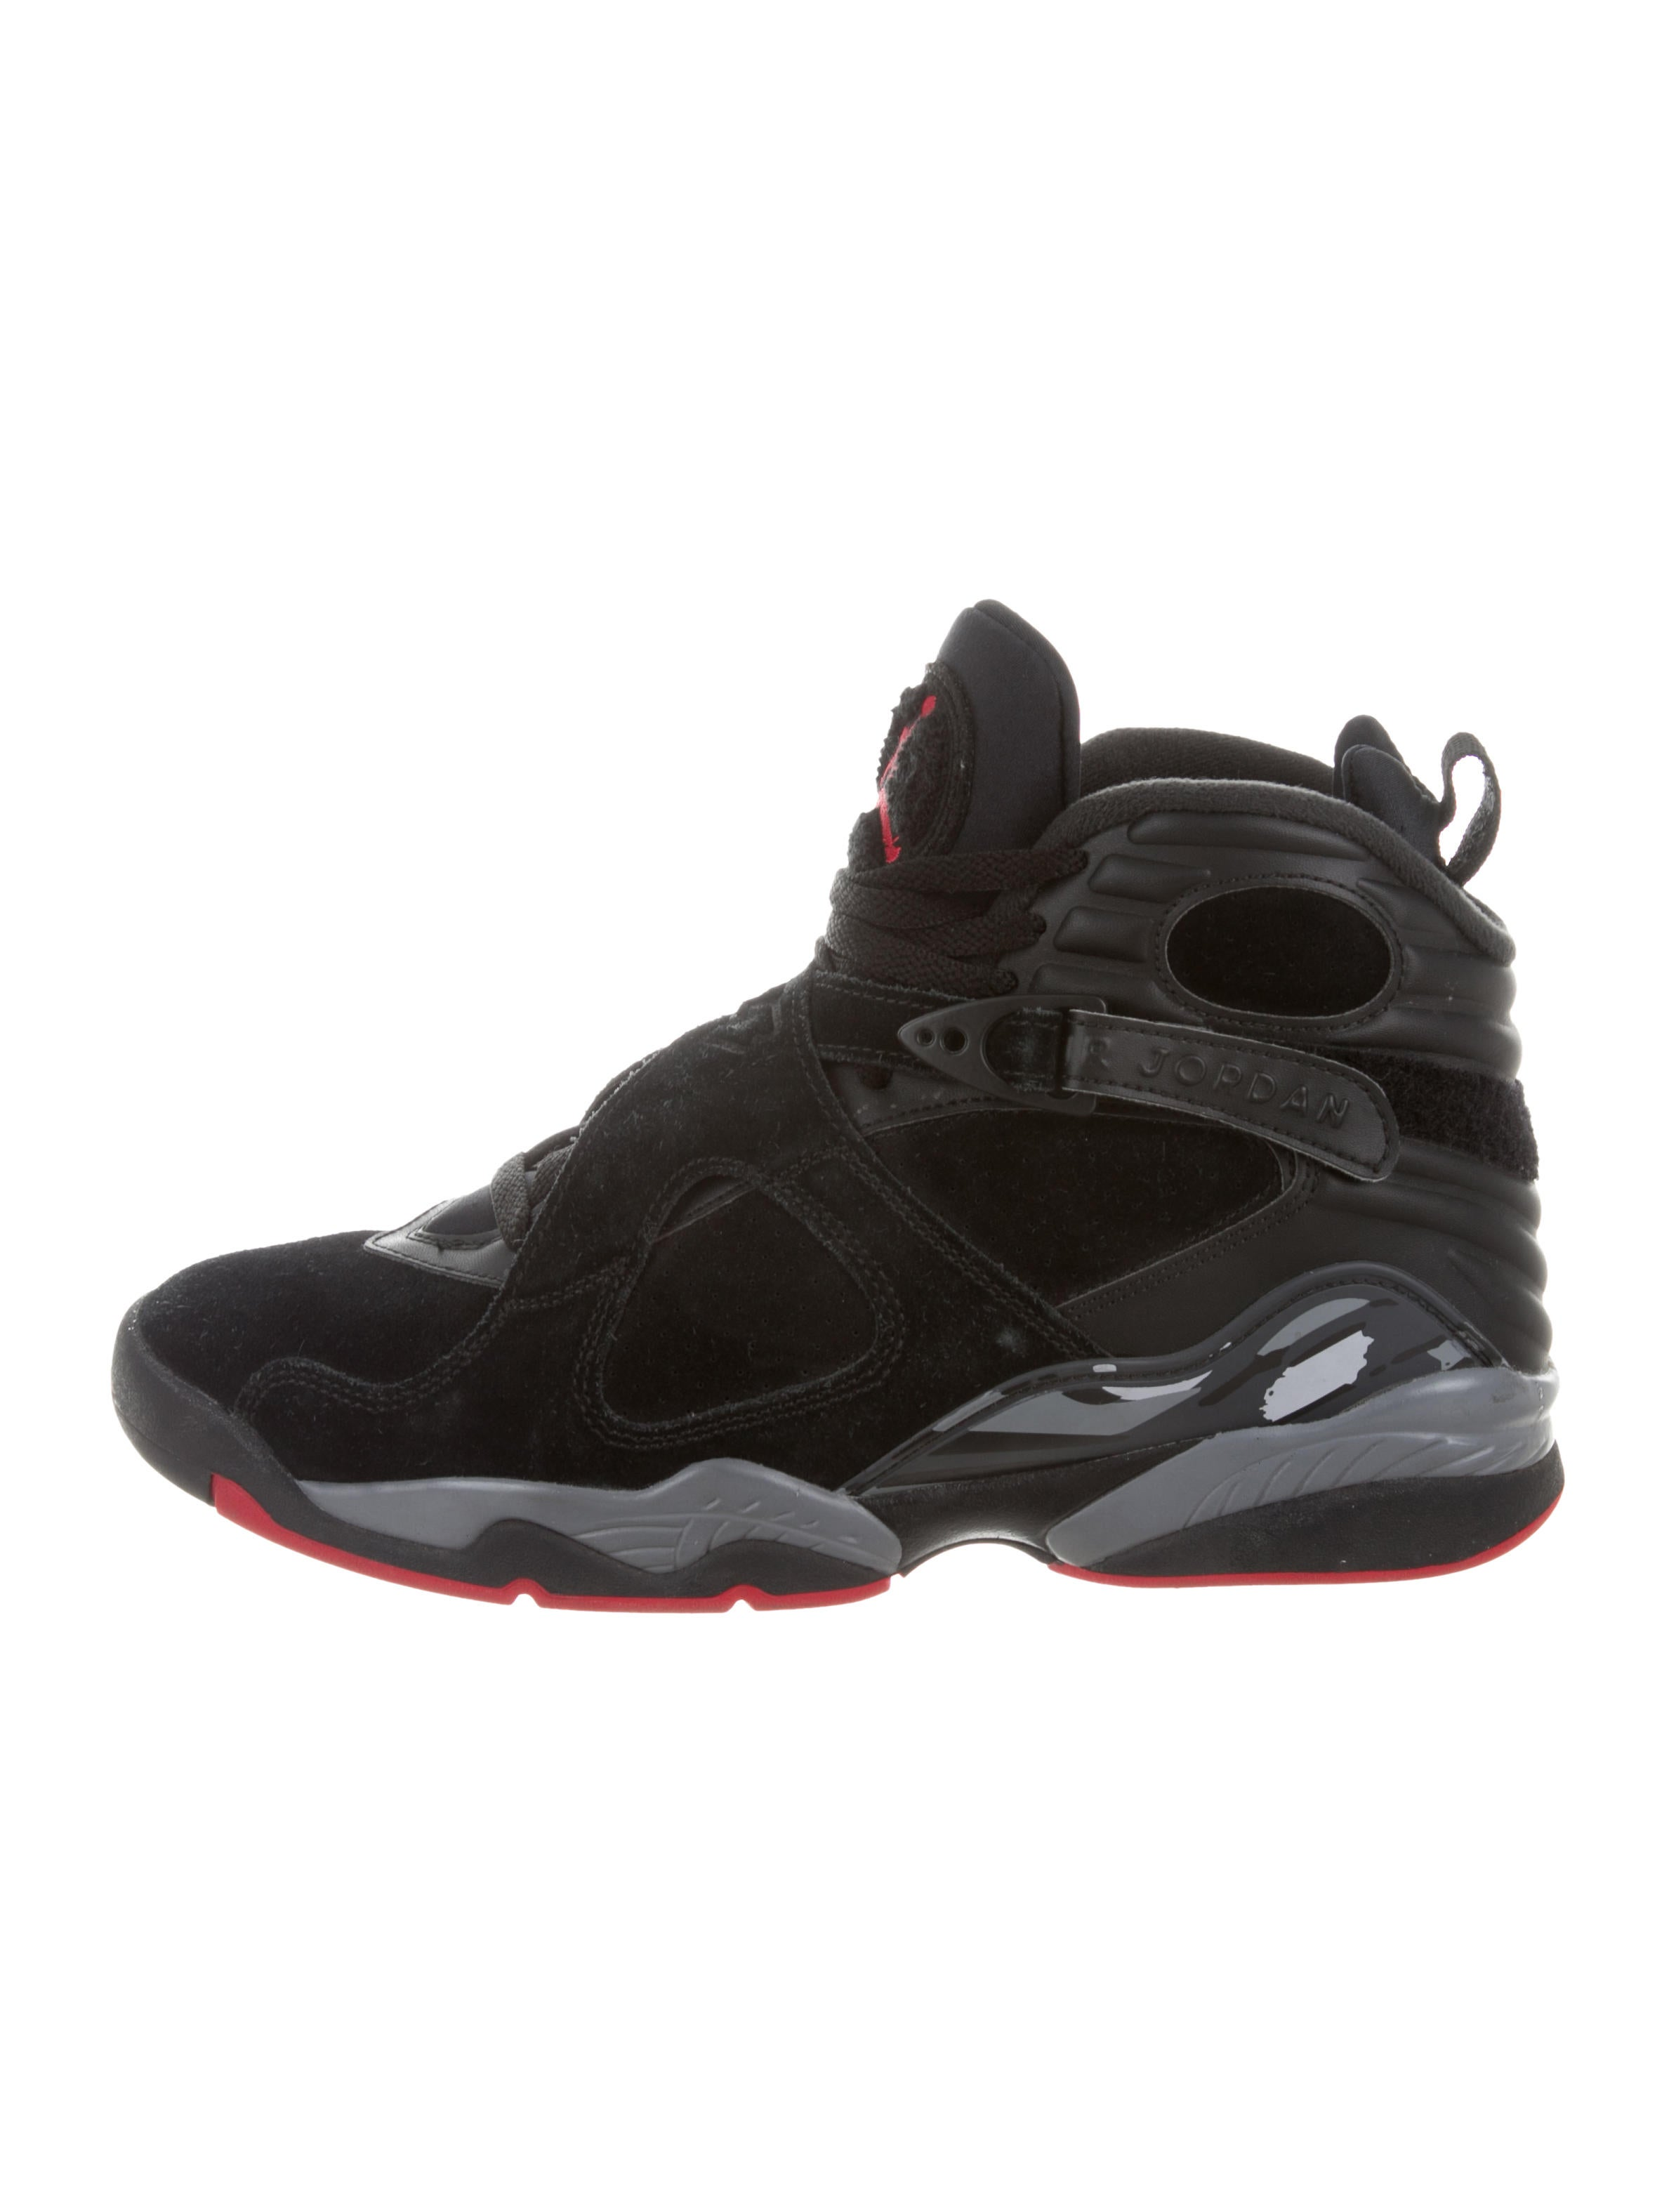 new product 11aae d680c ... mens nike basketball shoes black red db2ae afe37  spain nike air jordan  8 retro playoff sneakers. 8 retro playoff sneakers 7dbed 405c5